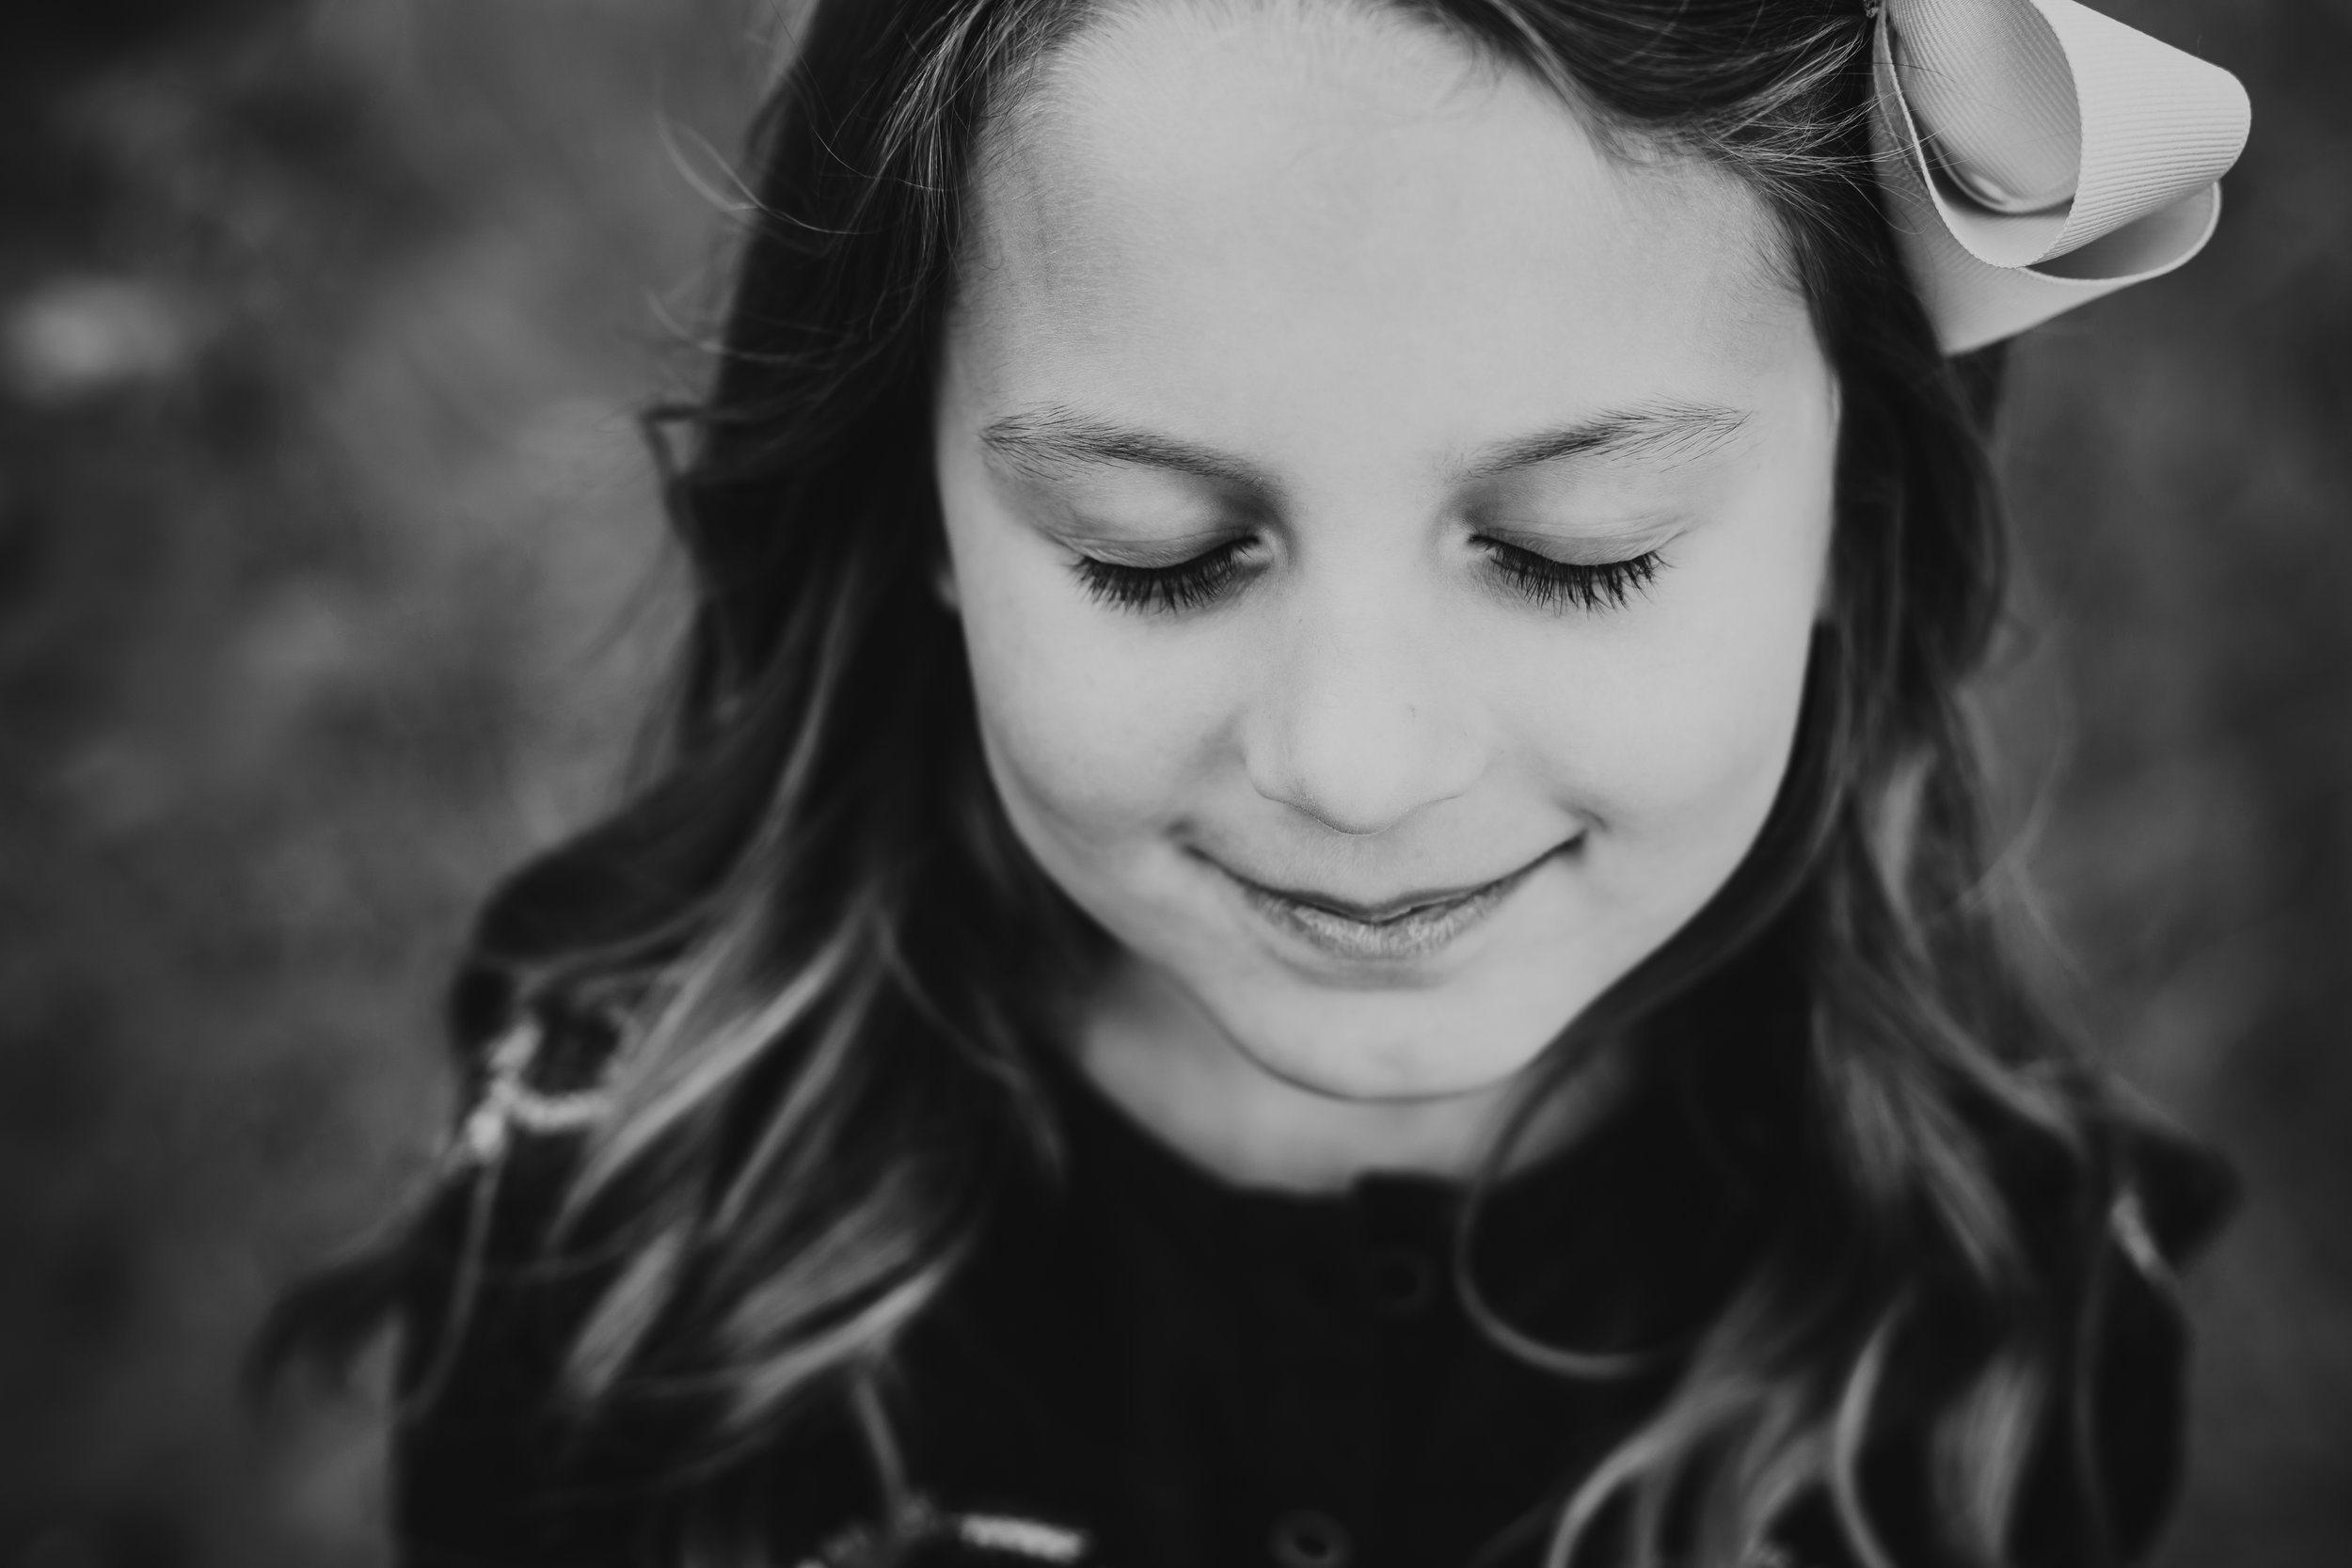 Close up feature picture of big sister during family session in black and white #tealawardphotography #texasfamilyphotographer #amarillophotographer #amarillofamilyphotographer #lifestylephotography #emotionalphotography #familyphotosoot #family #lovingsiblings #purejoy #familyphotos #familyphotographer #greatoutdoors